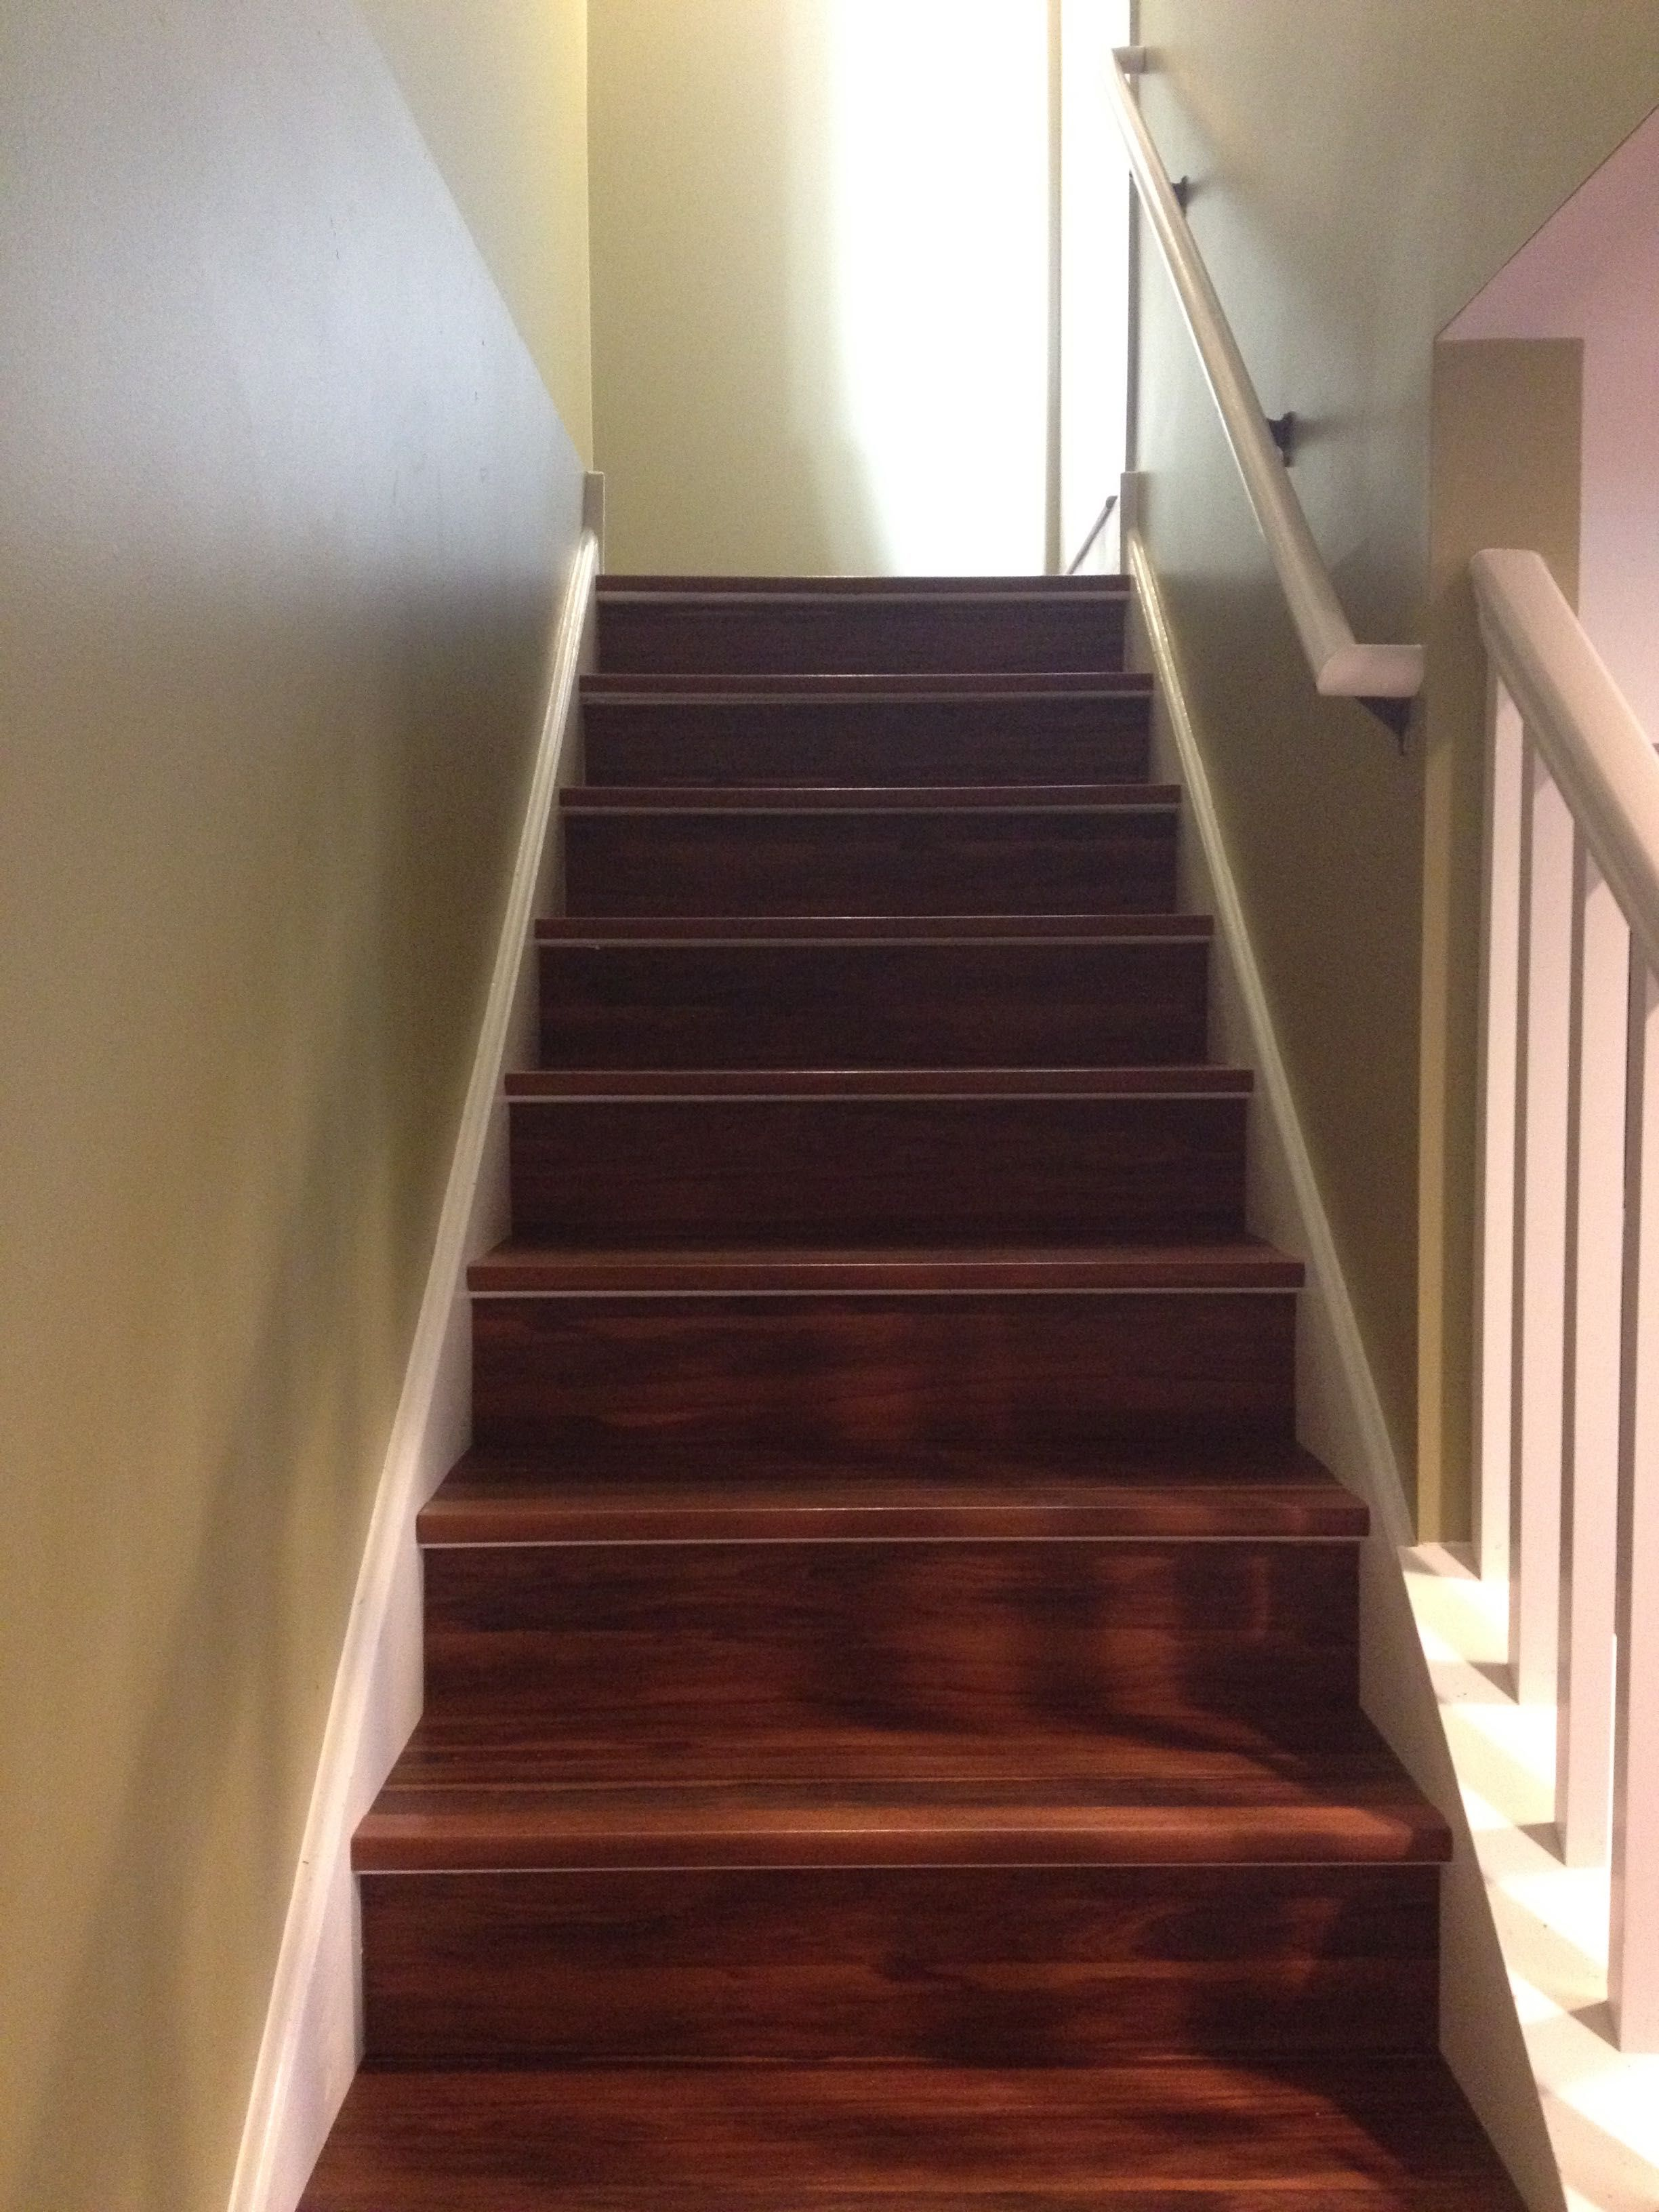 Installed vinyl planks directly on top of the old plywood